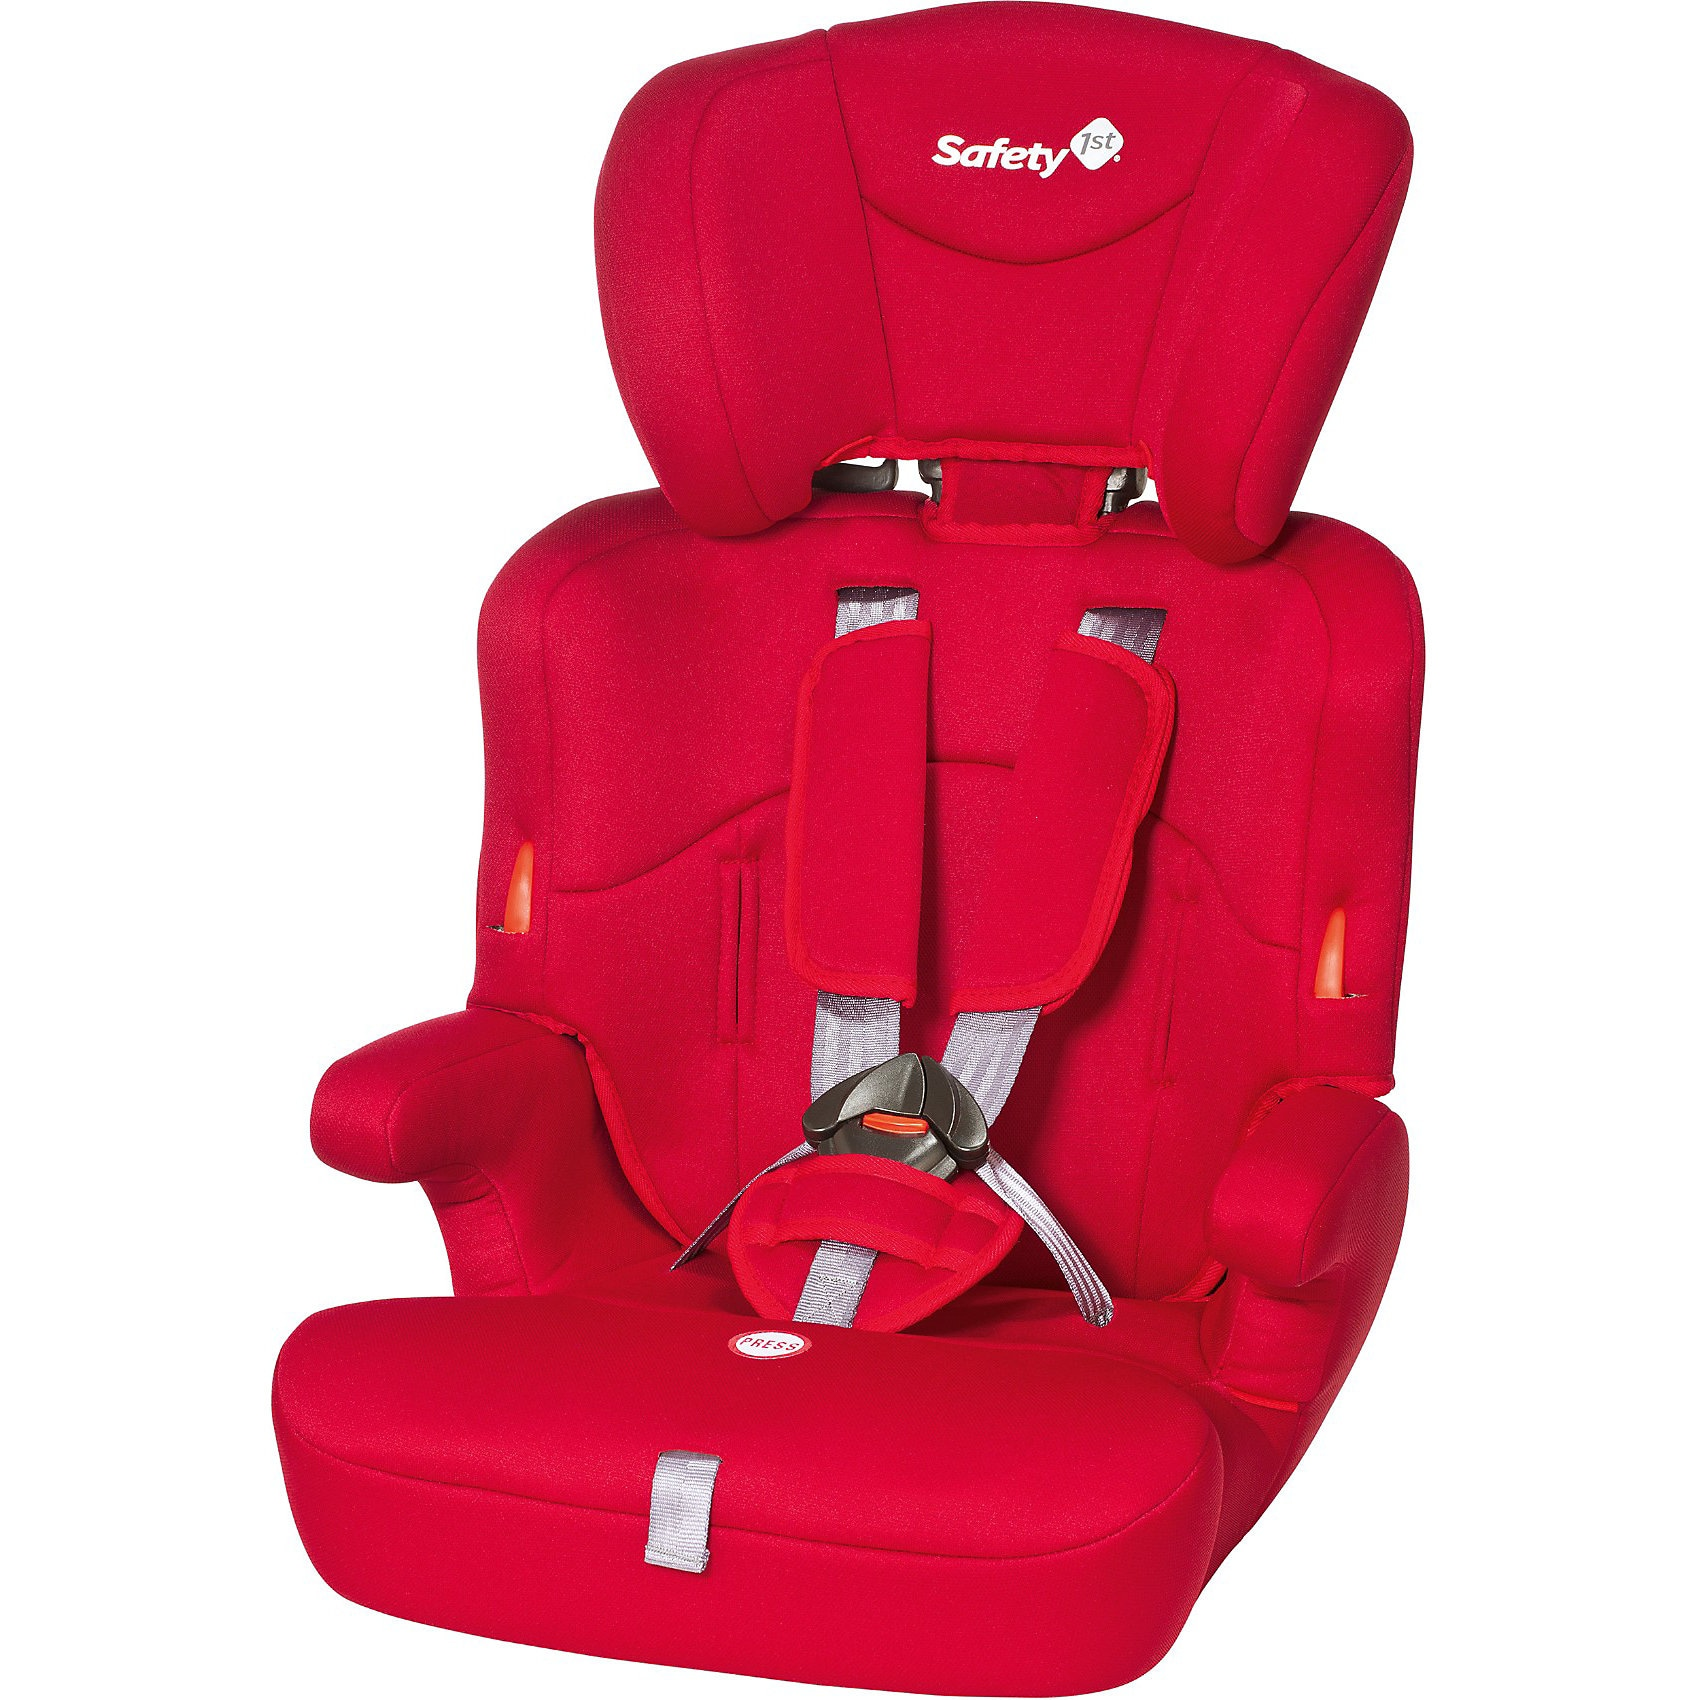 Safety 1st Auto-Kindersitz Ever Safe Full Red 2018